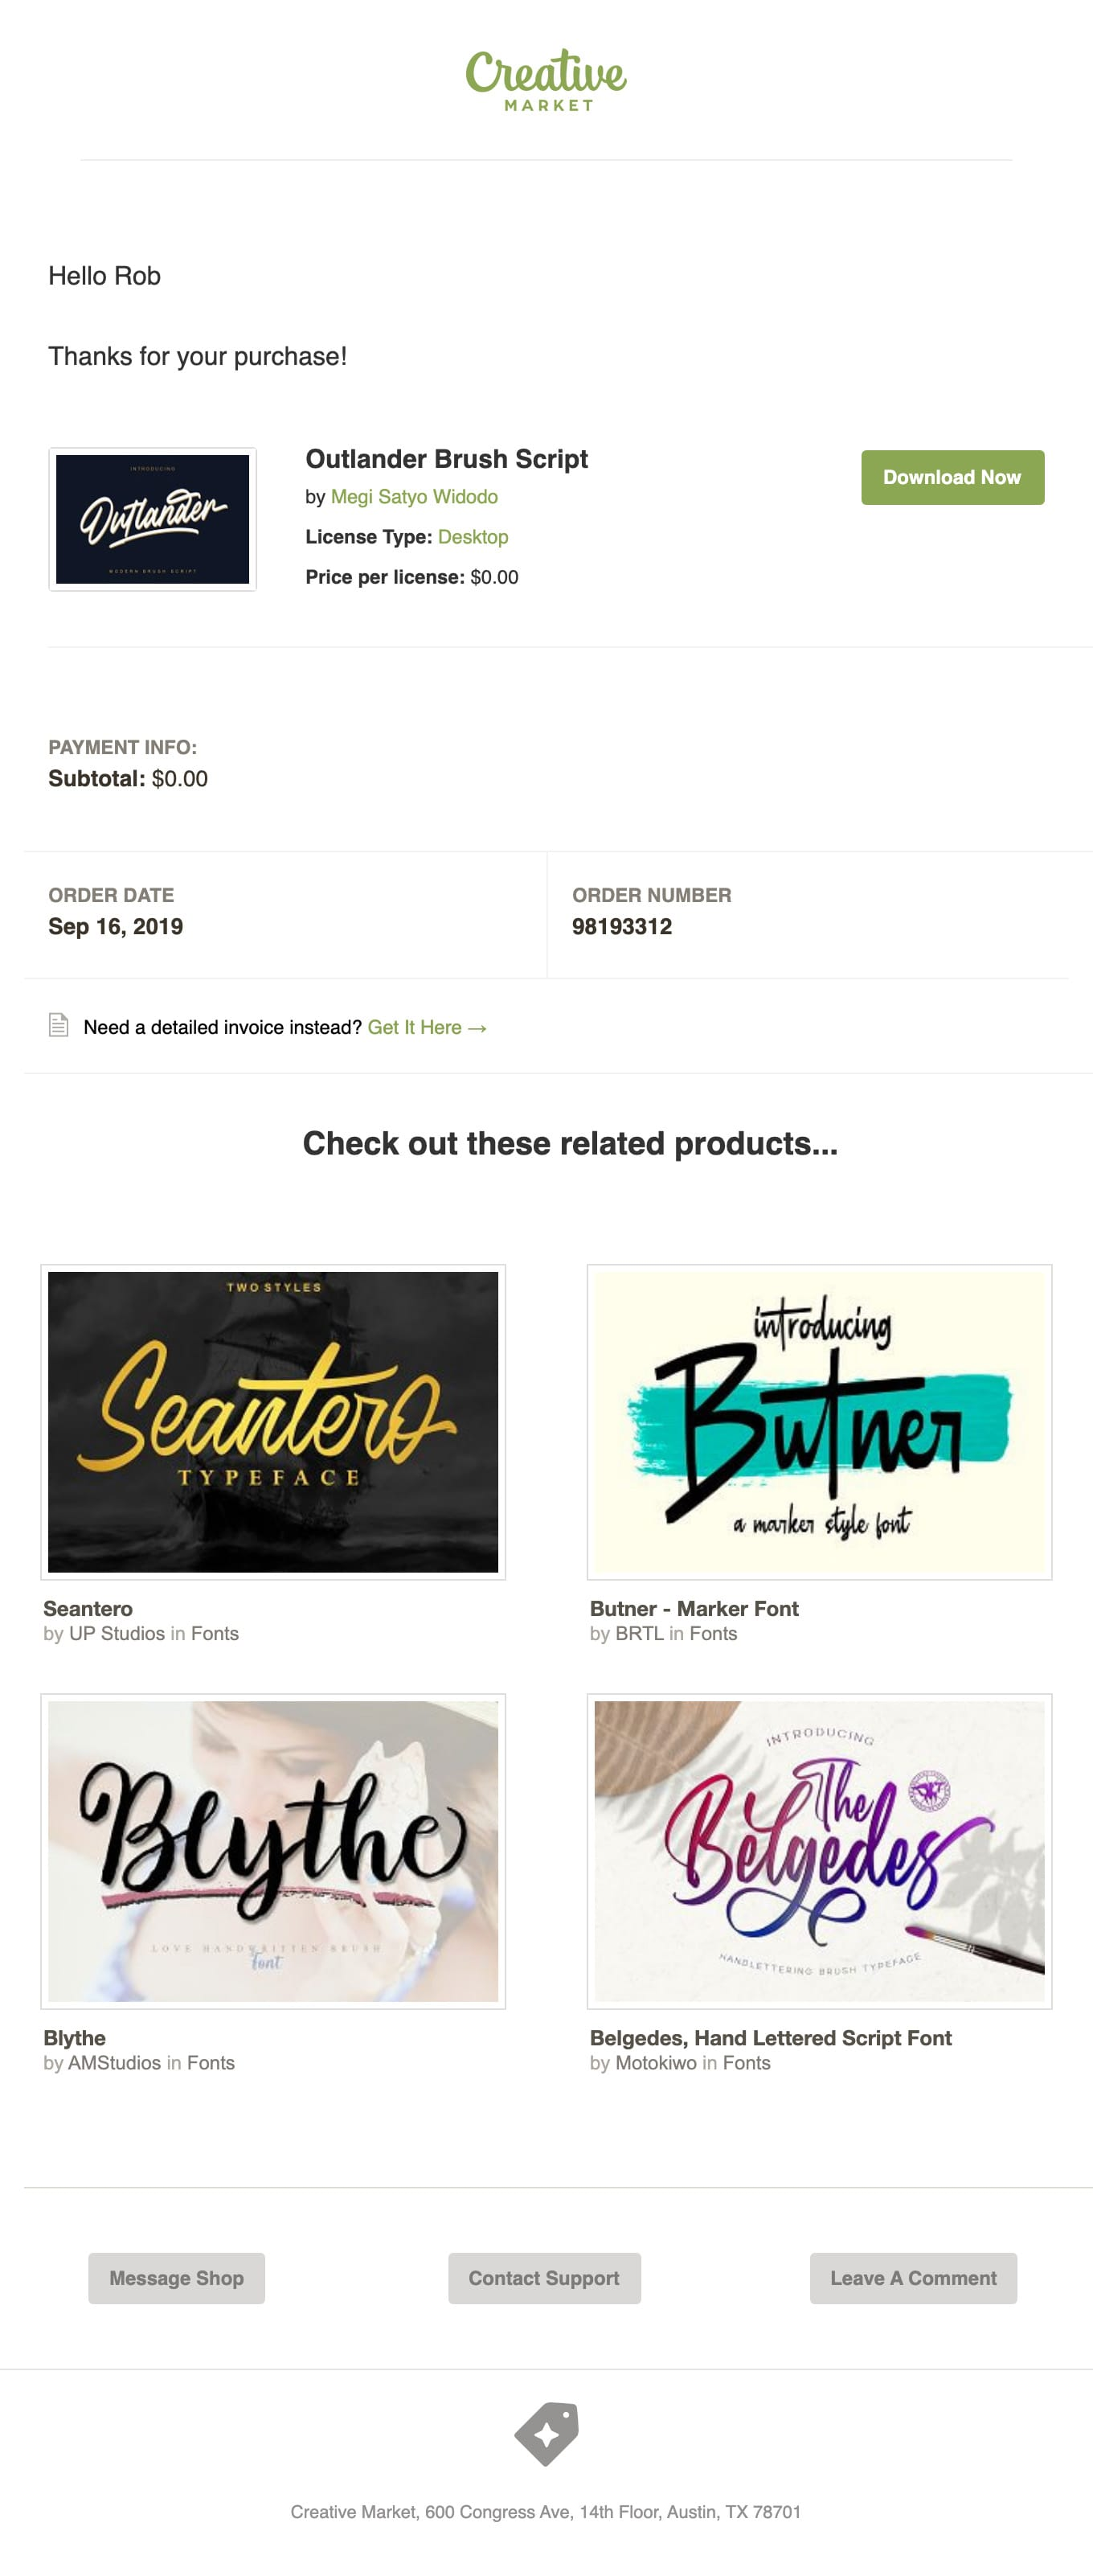 Receipt for your Creative Market purchase Email Screenshot